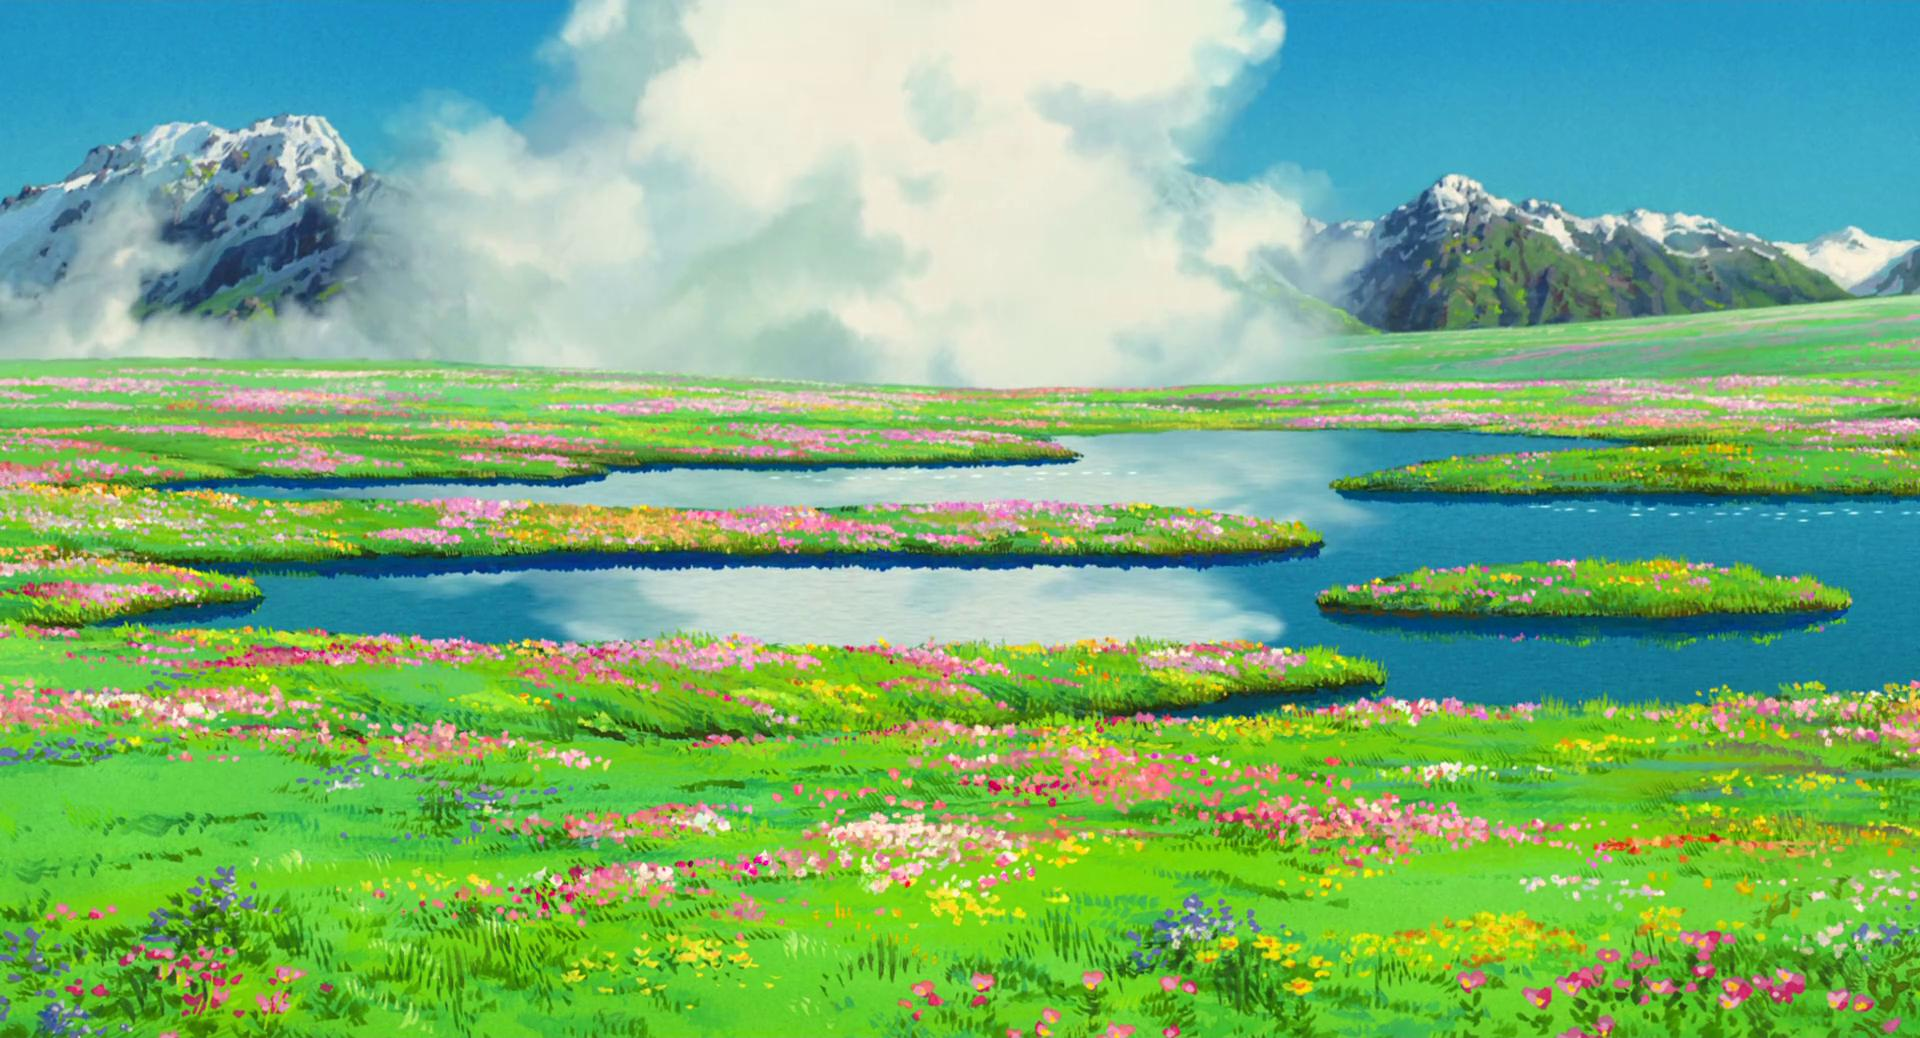 Wallpaper Wednesday 3 Another 10 Ghibli wallpapers 1920x1038